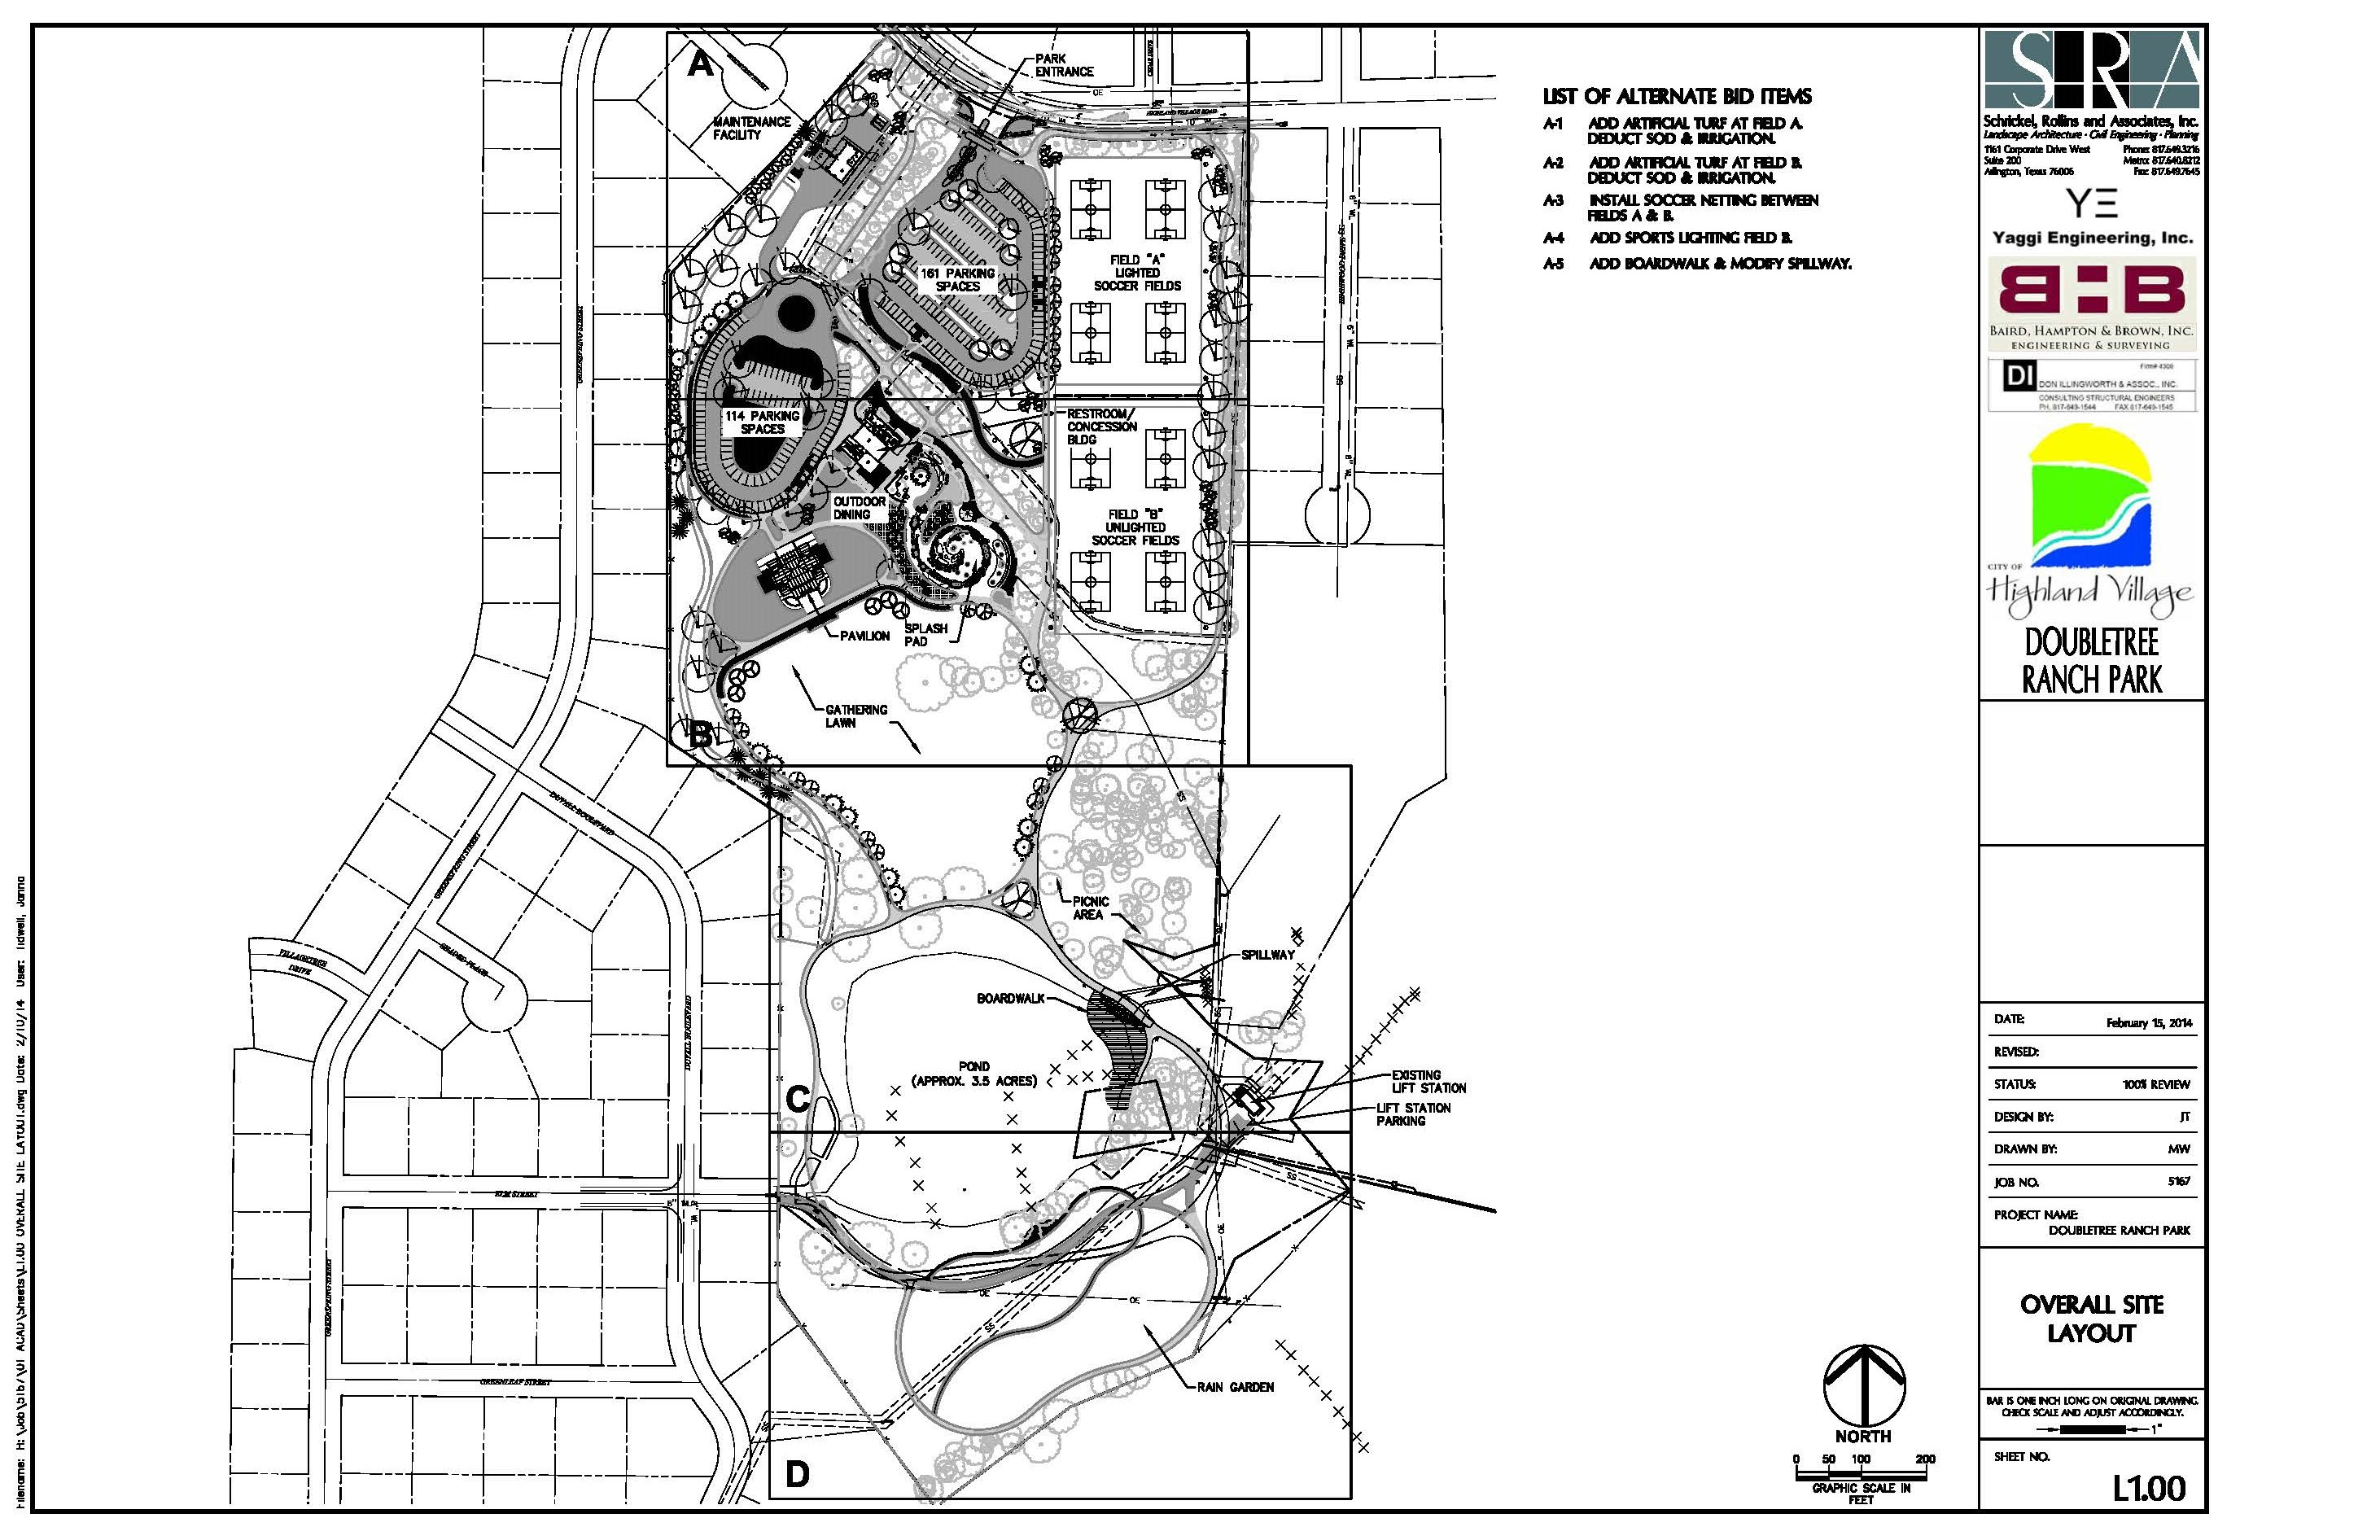 DOUBLETREE RANCH PARK OVERALL SITE PLAN